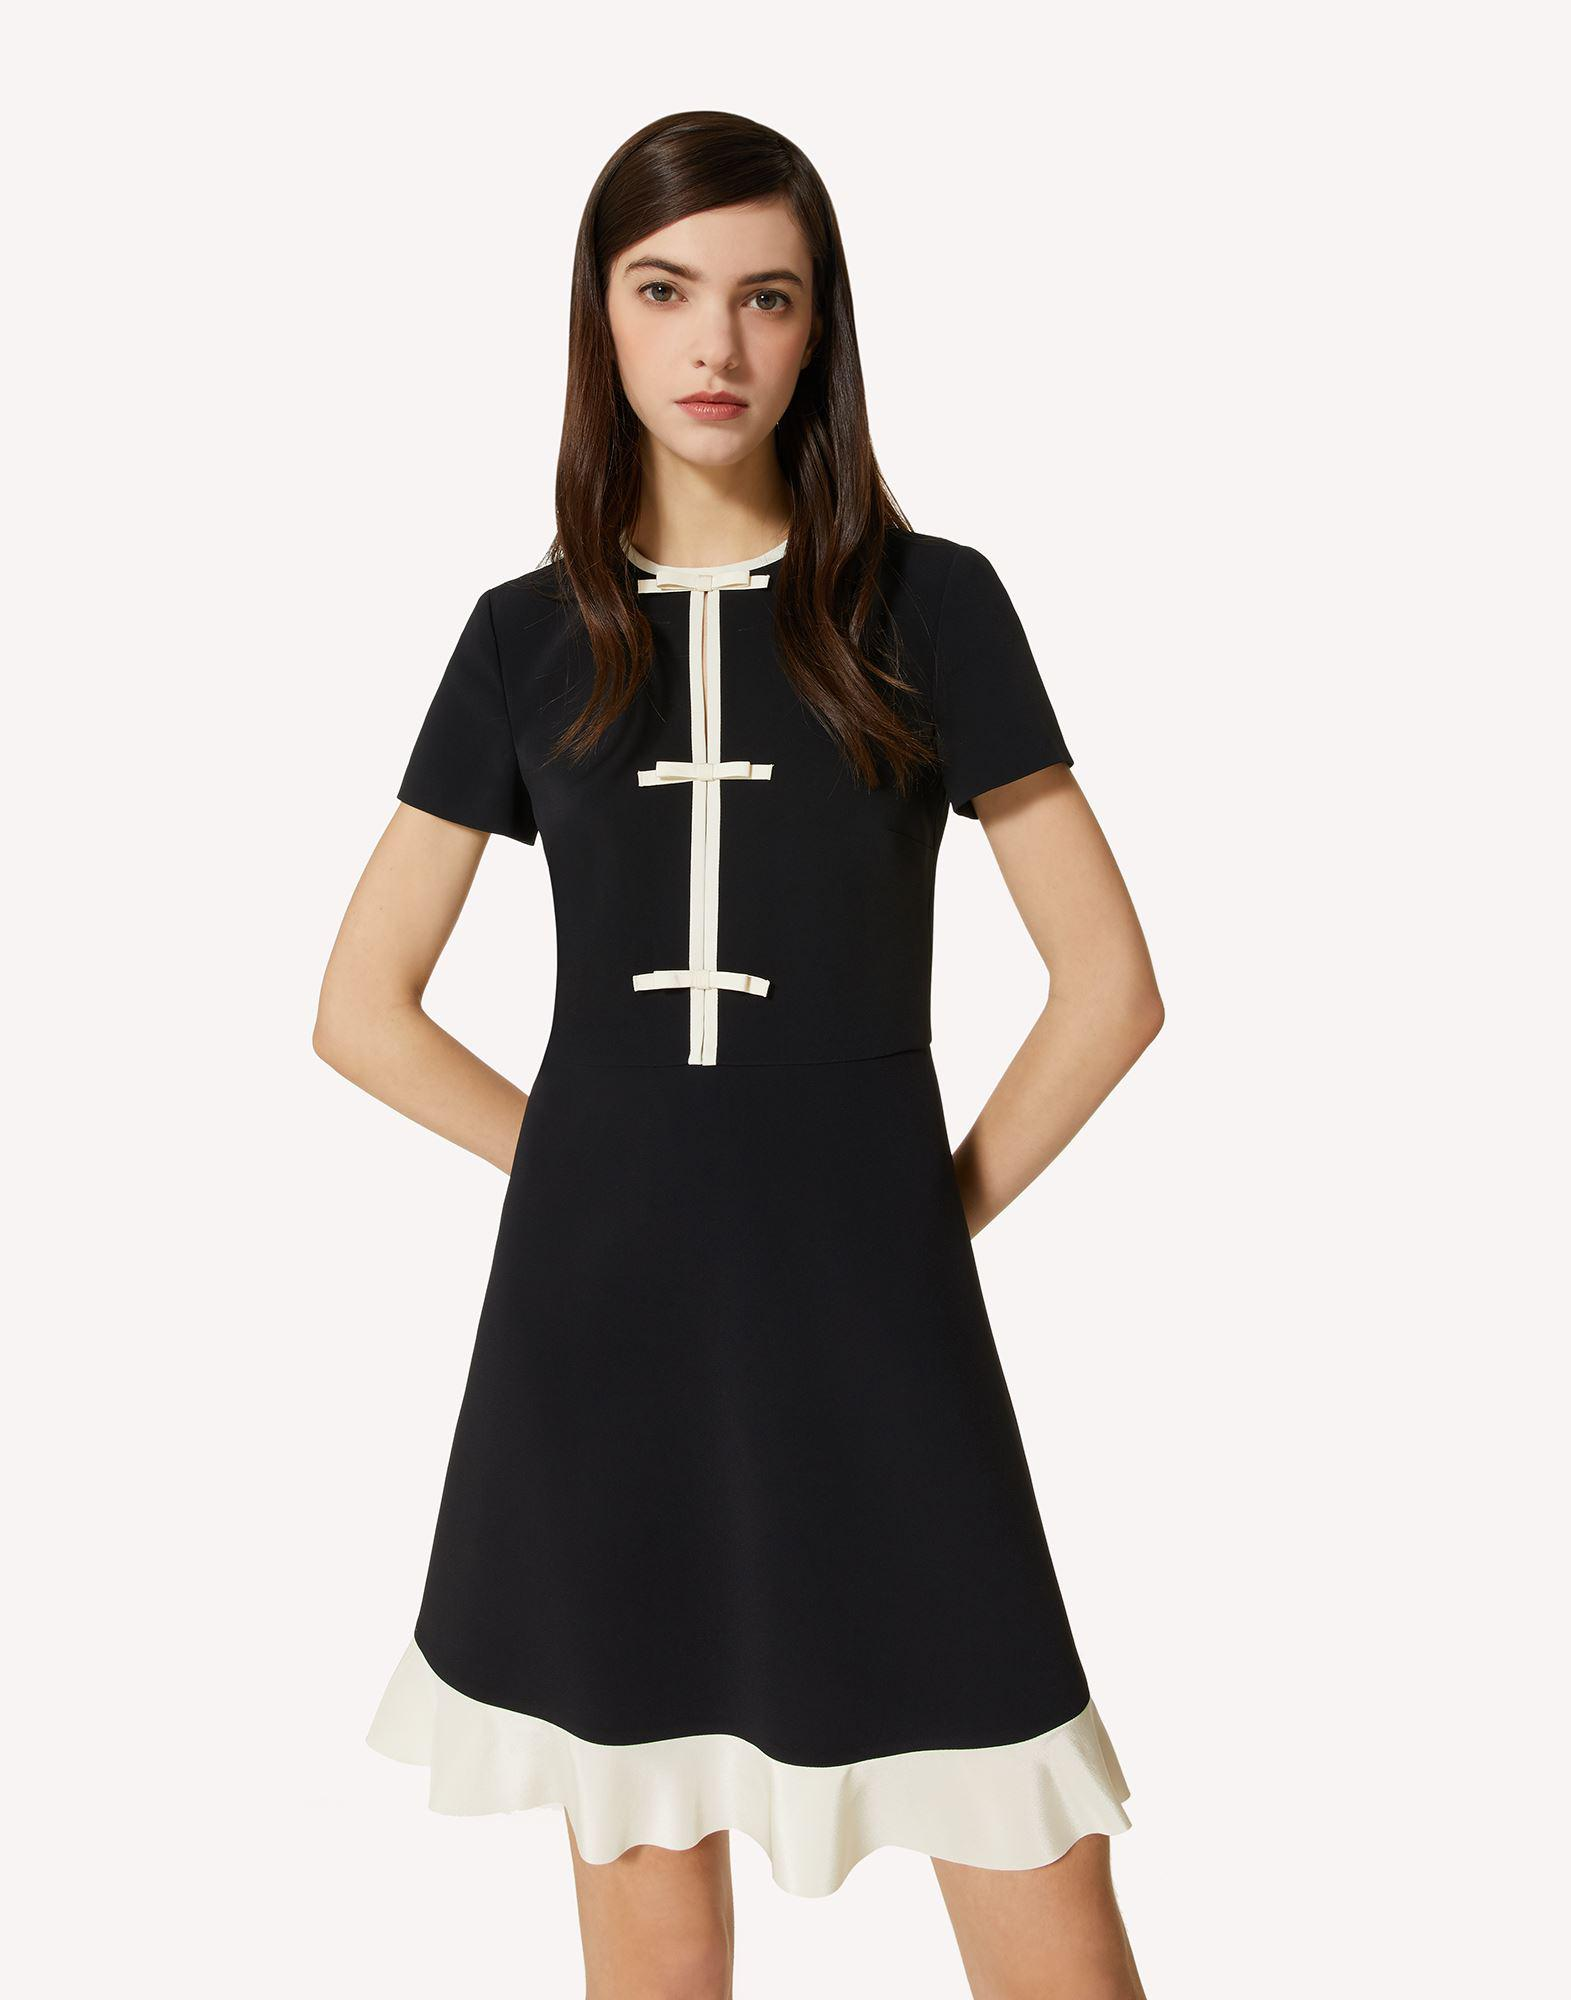 STRETCH FRISOTTINE DRESS WITH BOW DETAILS 3